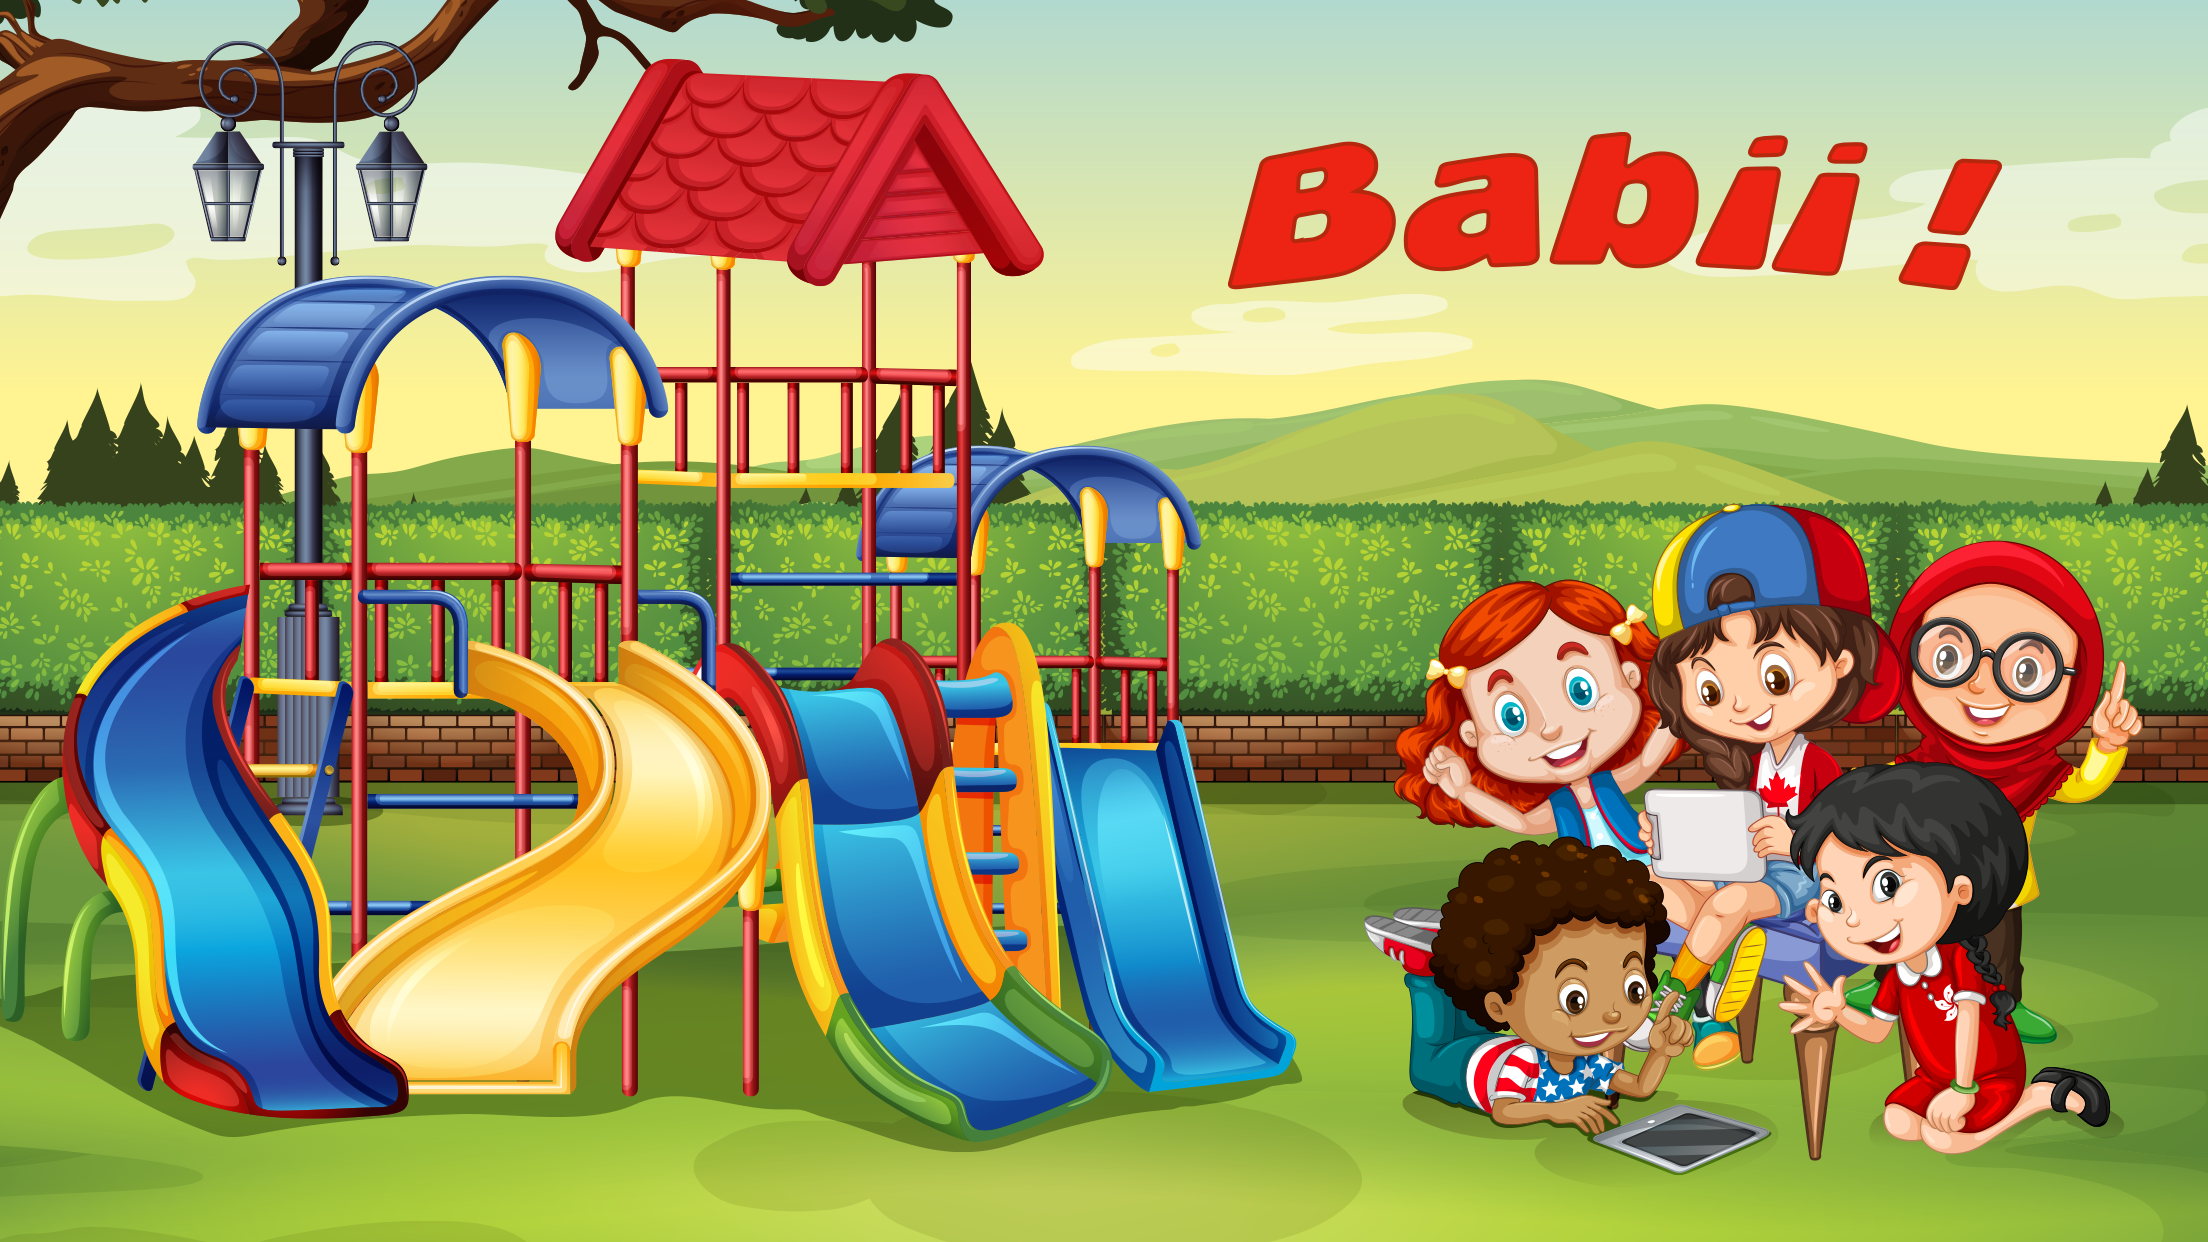 Learning apps for toddlers! Download the game and let the